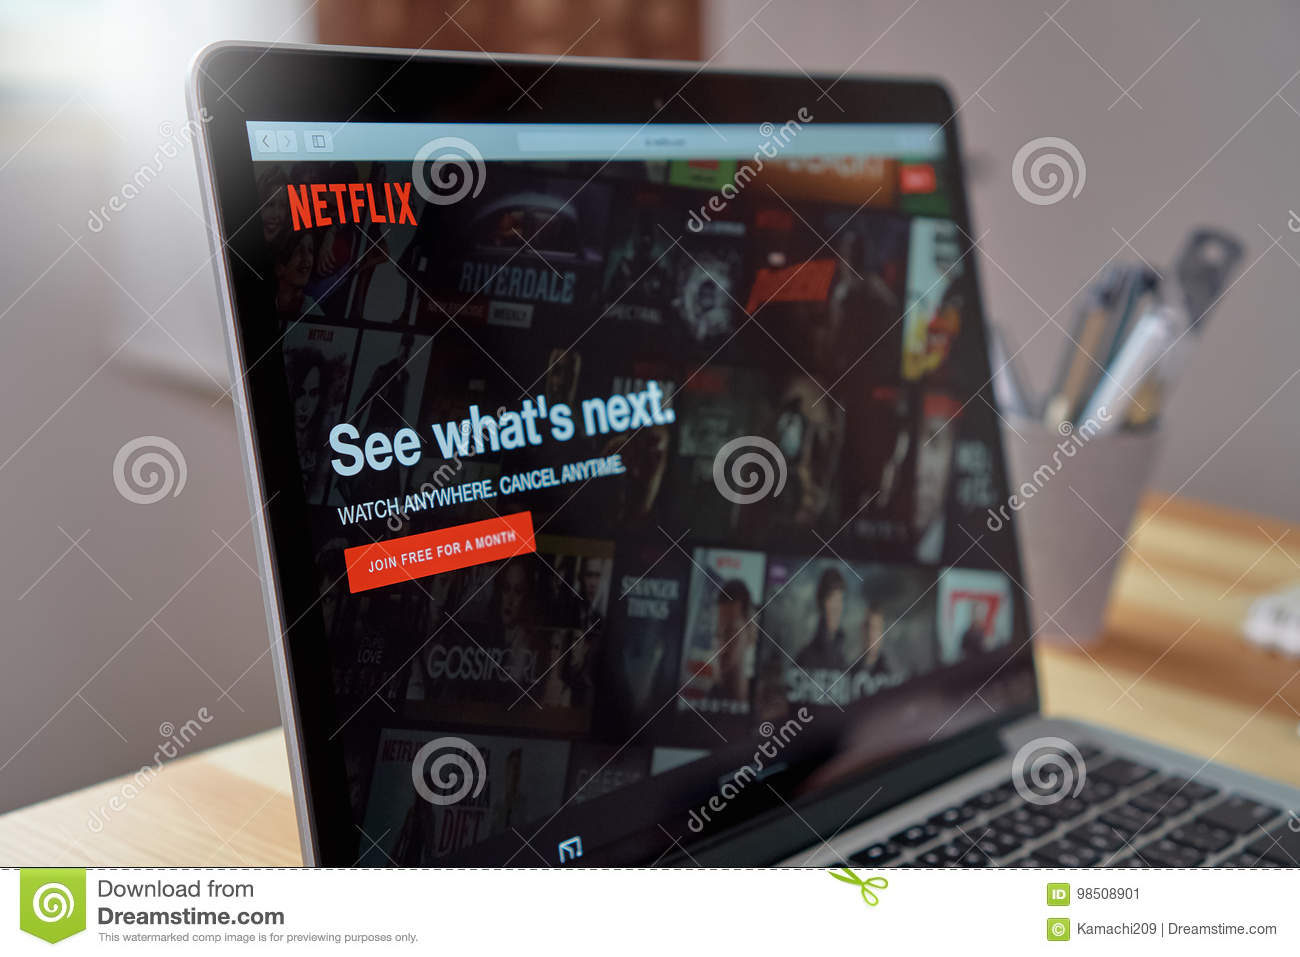 how do i download netflix on laptop